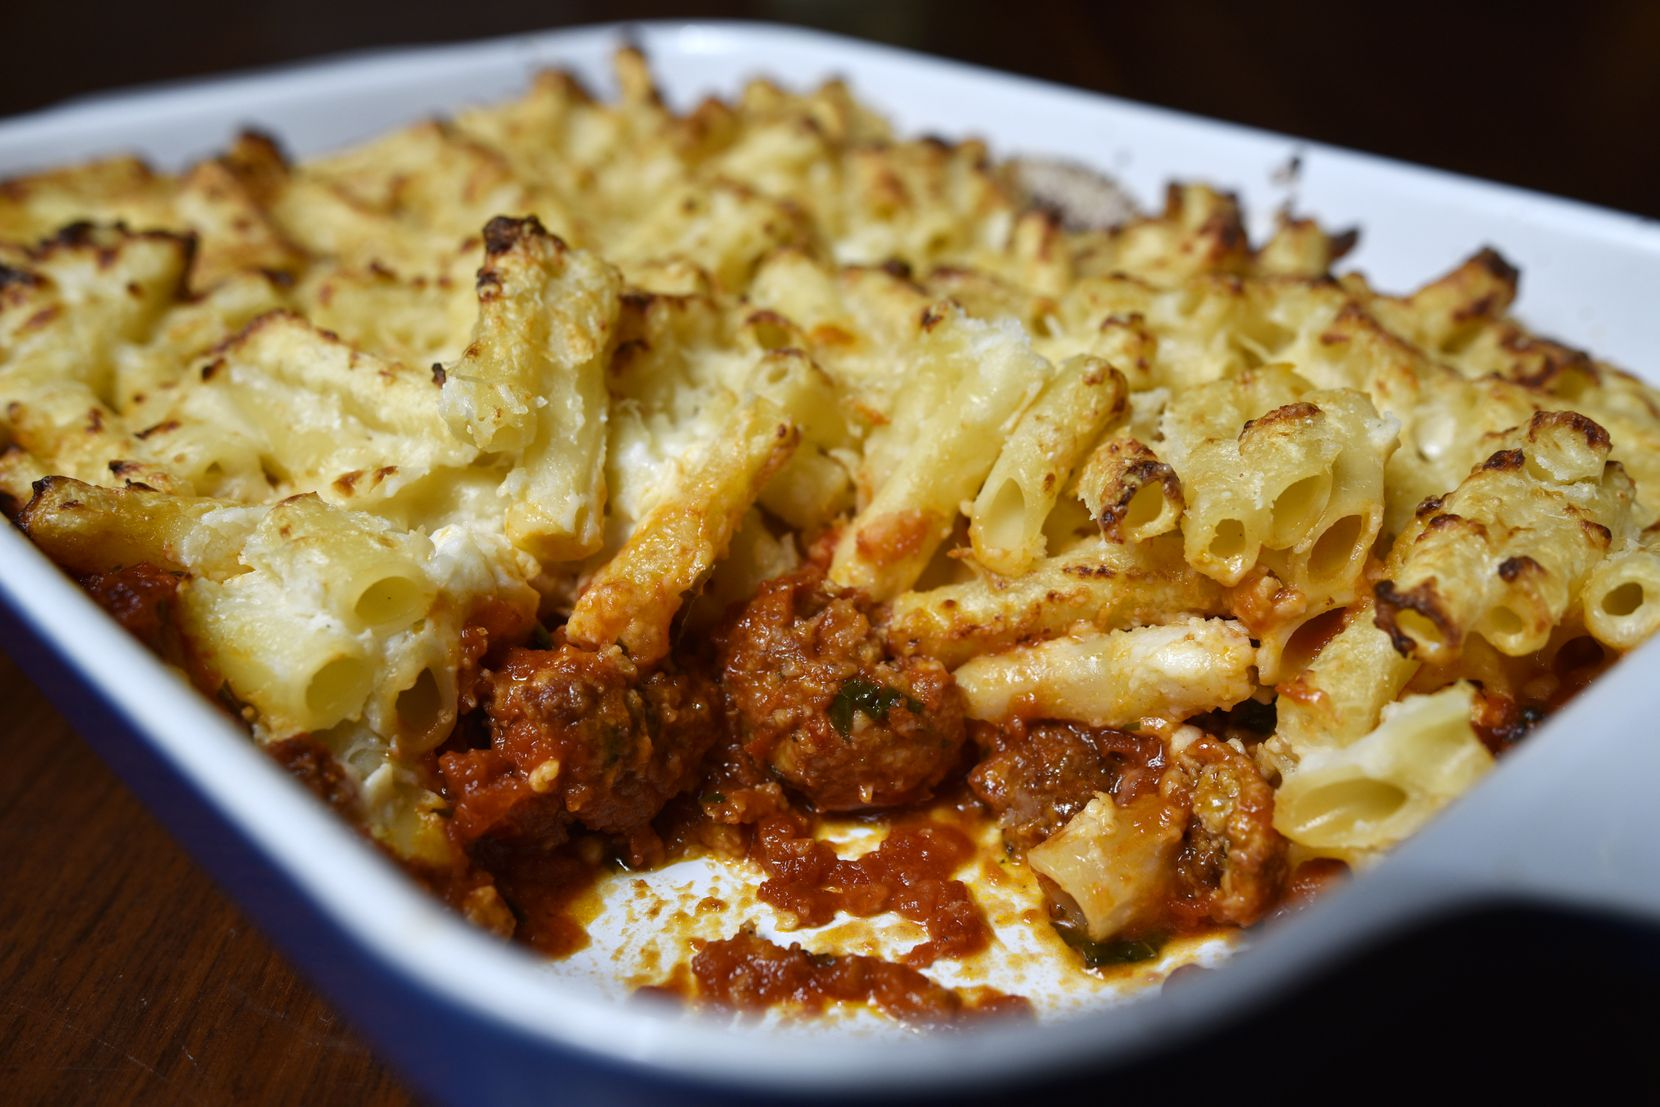 Baked Ziti with Meatballs from Nonna Italian restaurant in Dallas